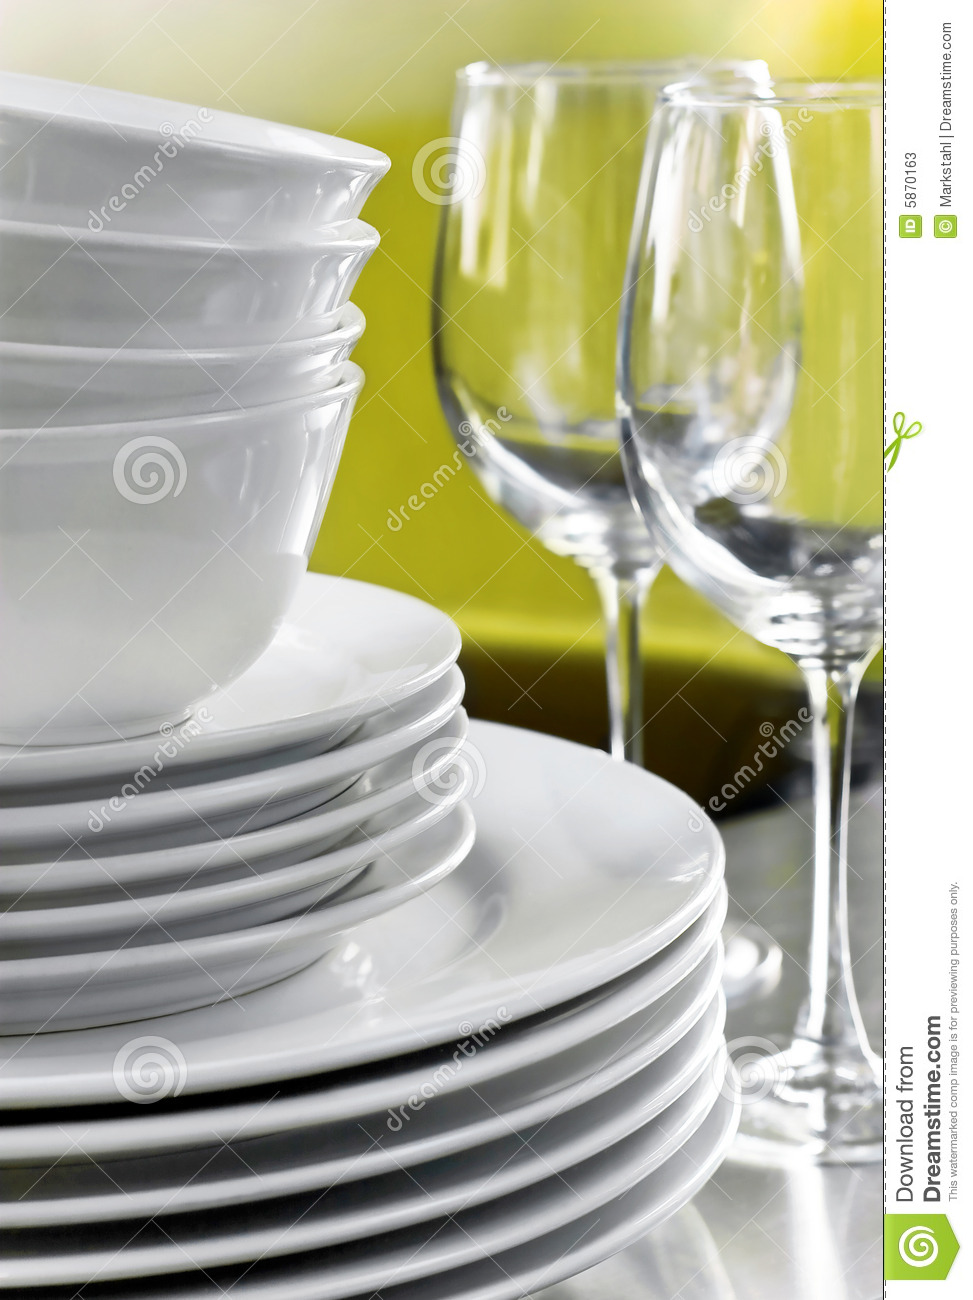 Plain White Plates Bowls and Crystal Wine Glasses